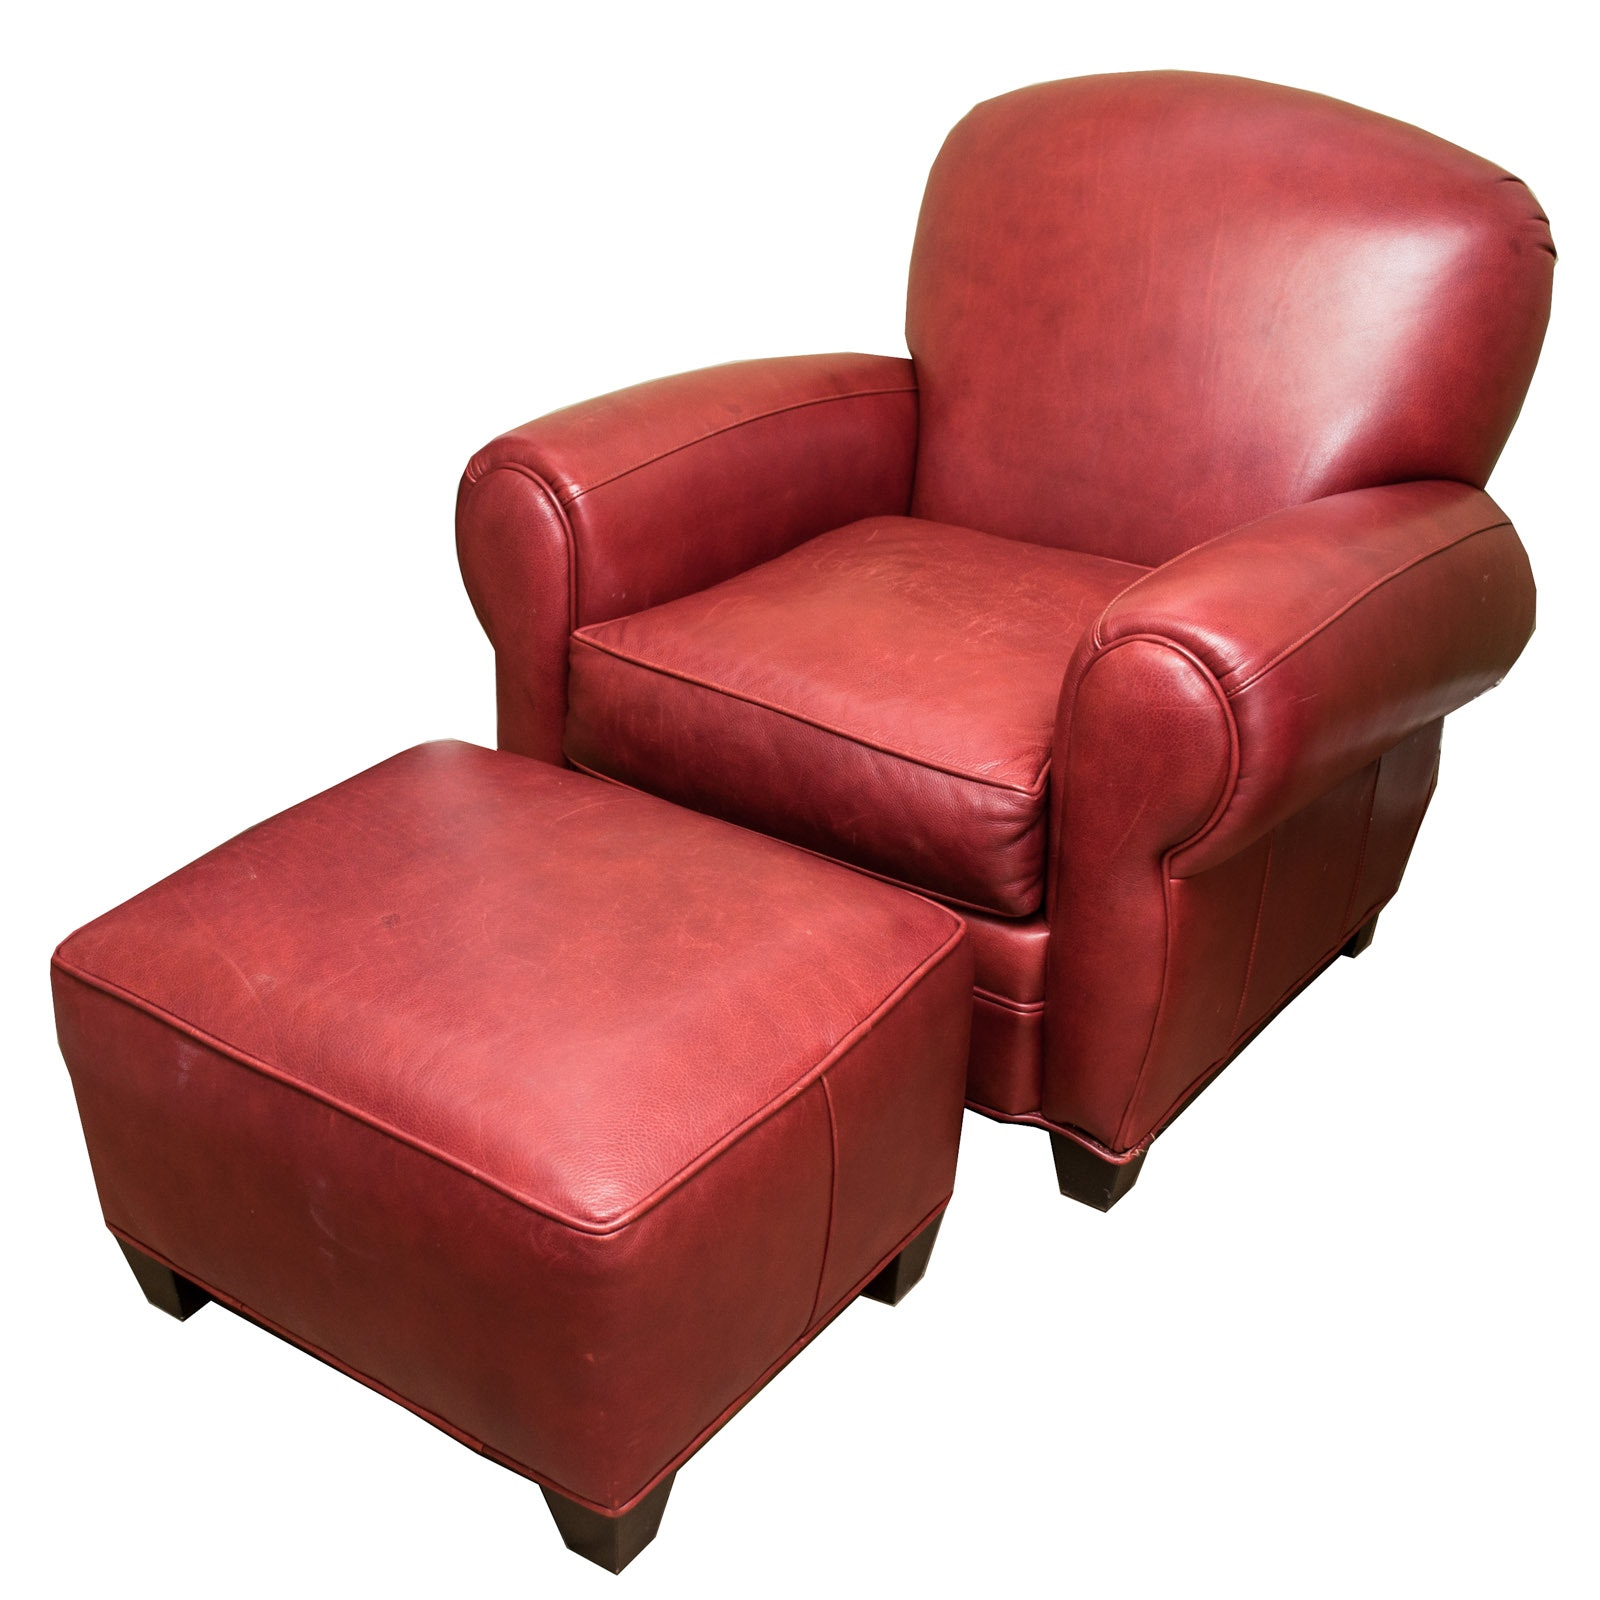 Red Leather Chair & Ottoman By Arhaus Furniture